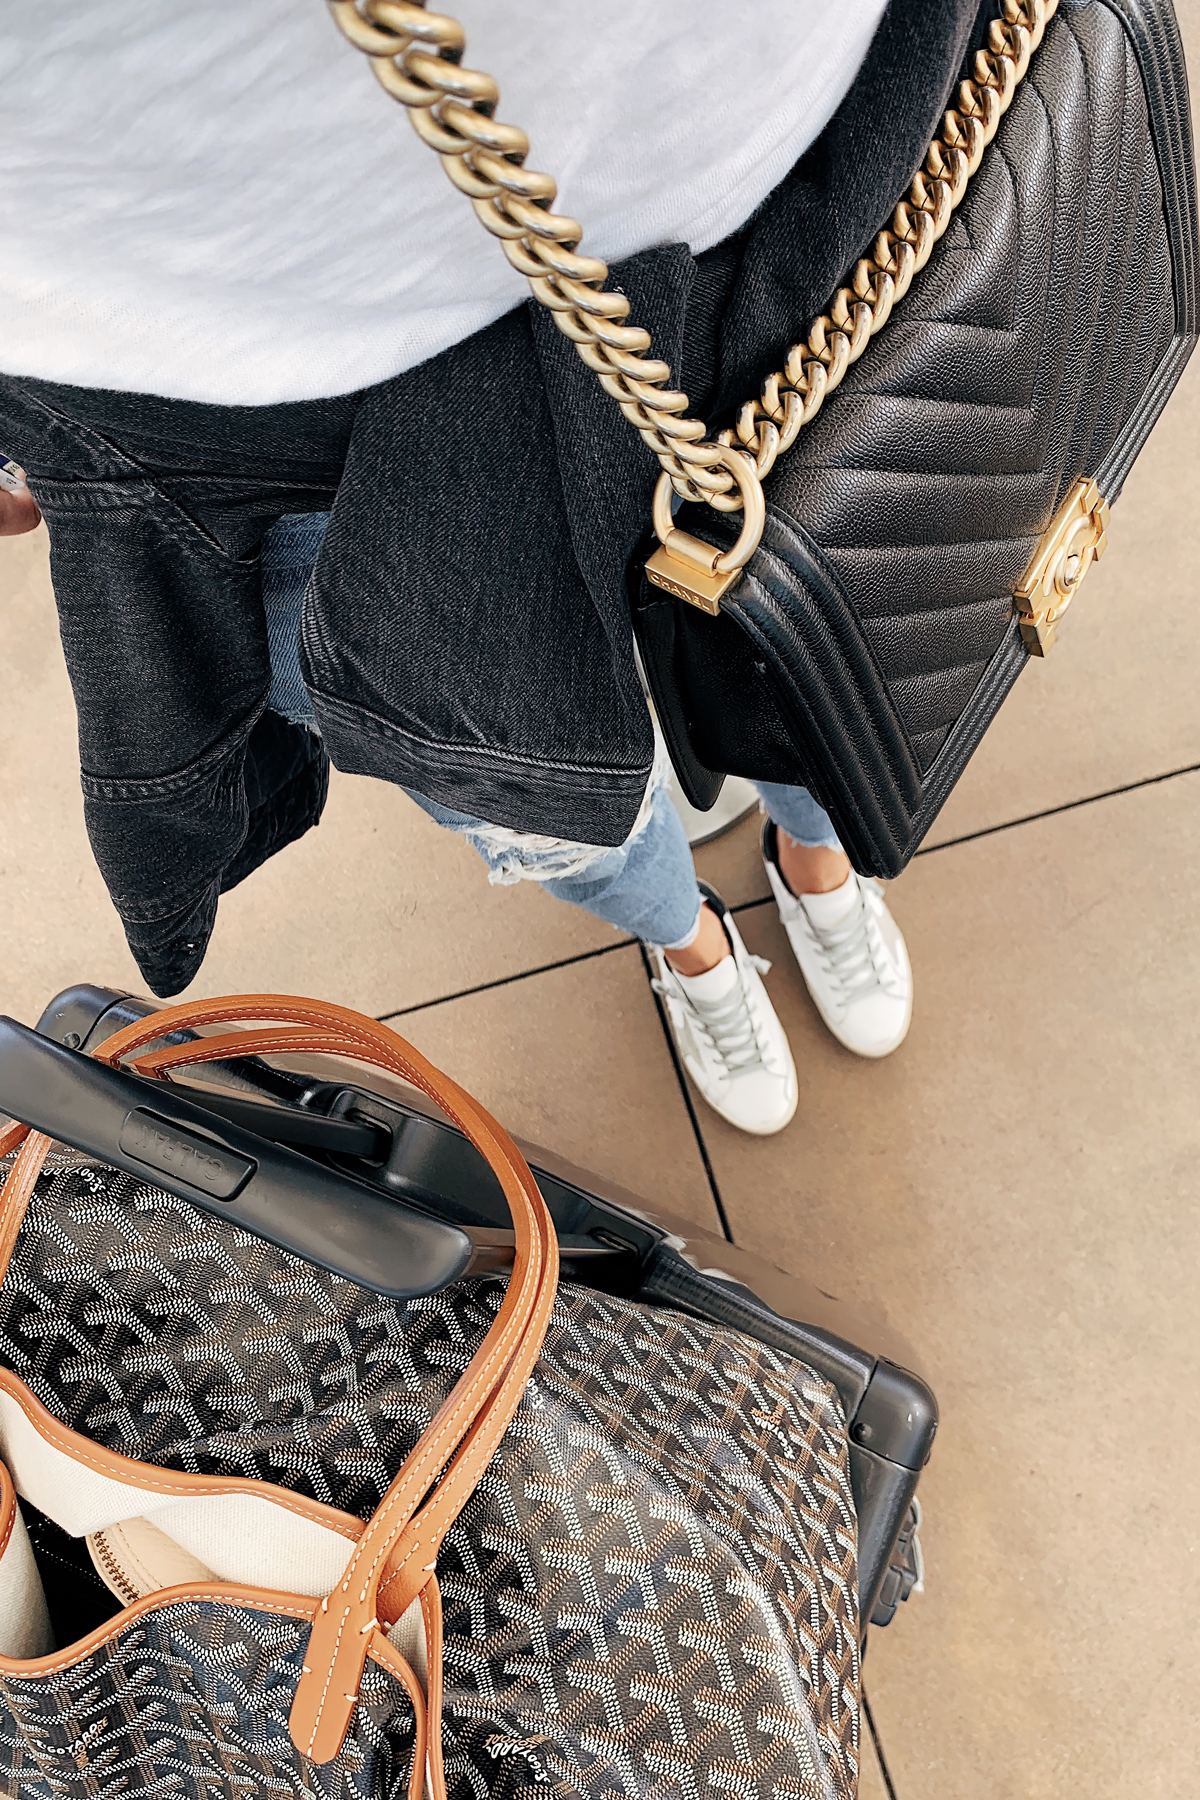 Fashion Jackson Travel Outfit Airport Style Chanel Black Boy Bag Goyard Tote Calpak Luggage